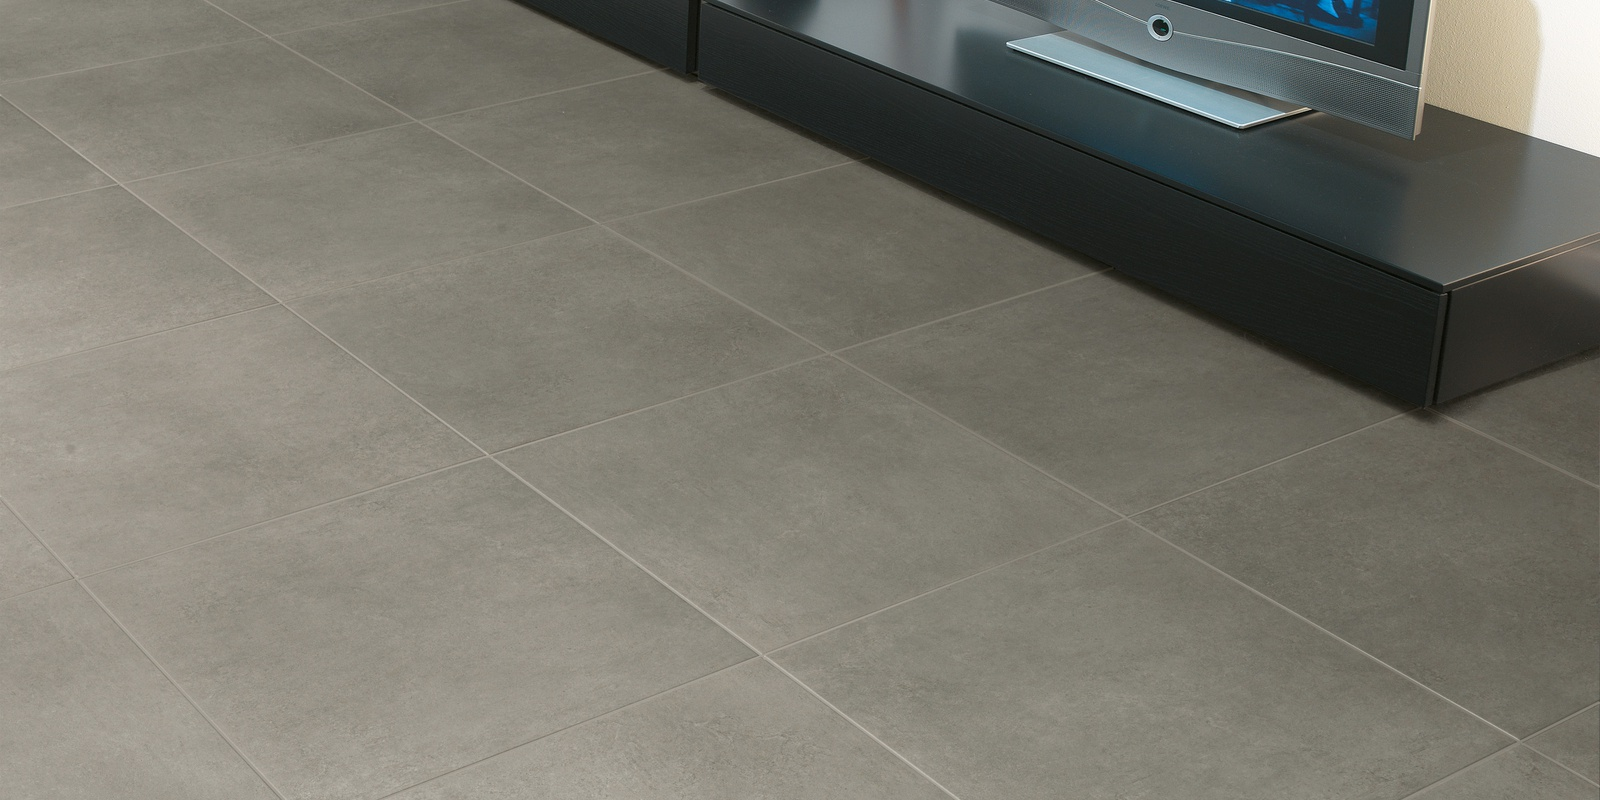 Find Perfect Tiles - View Our Selection of Tiles | Florida Tile